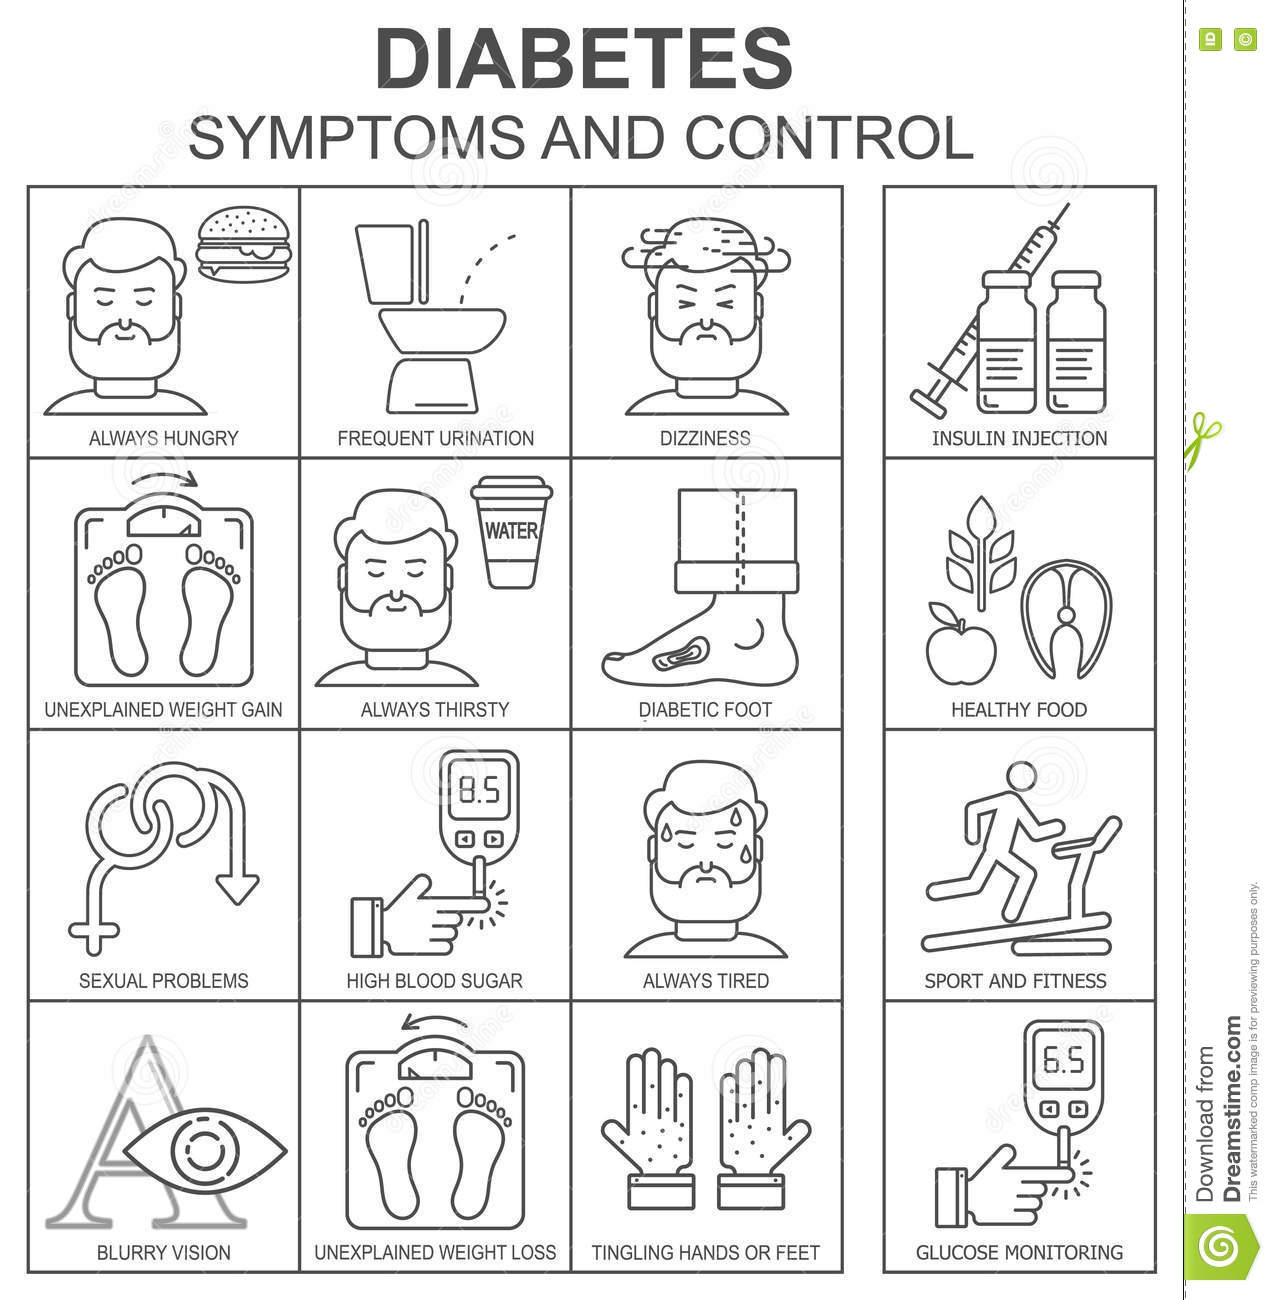 Diabetes symptoms and control line style vector background